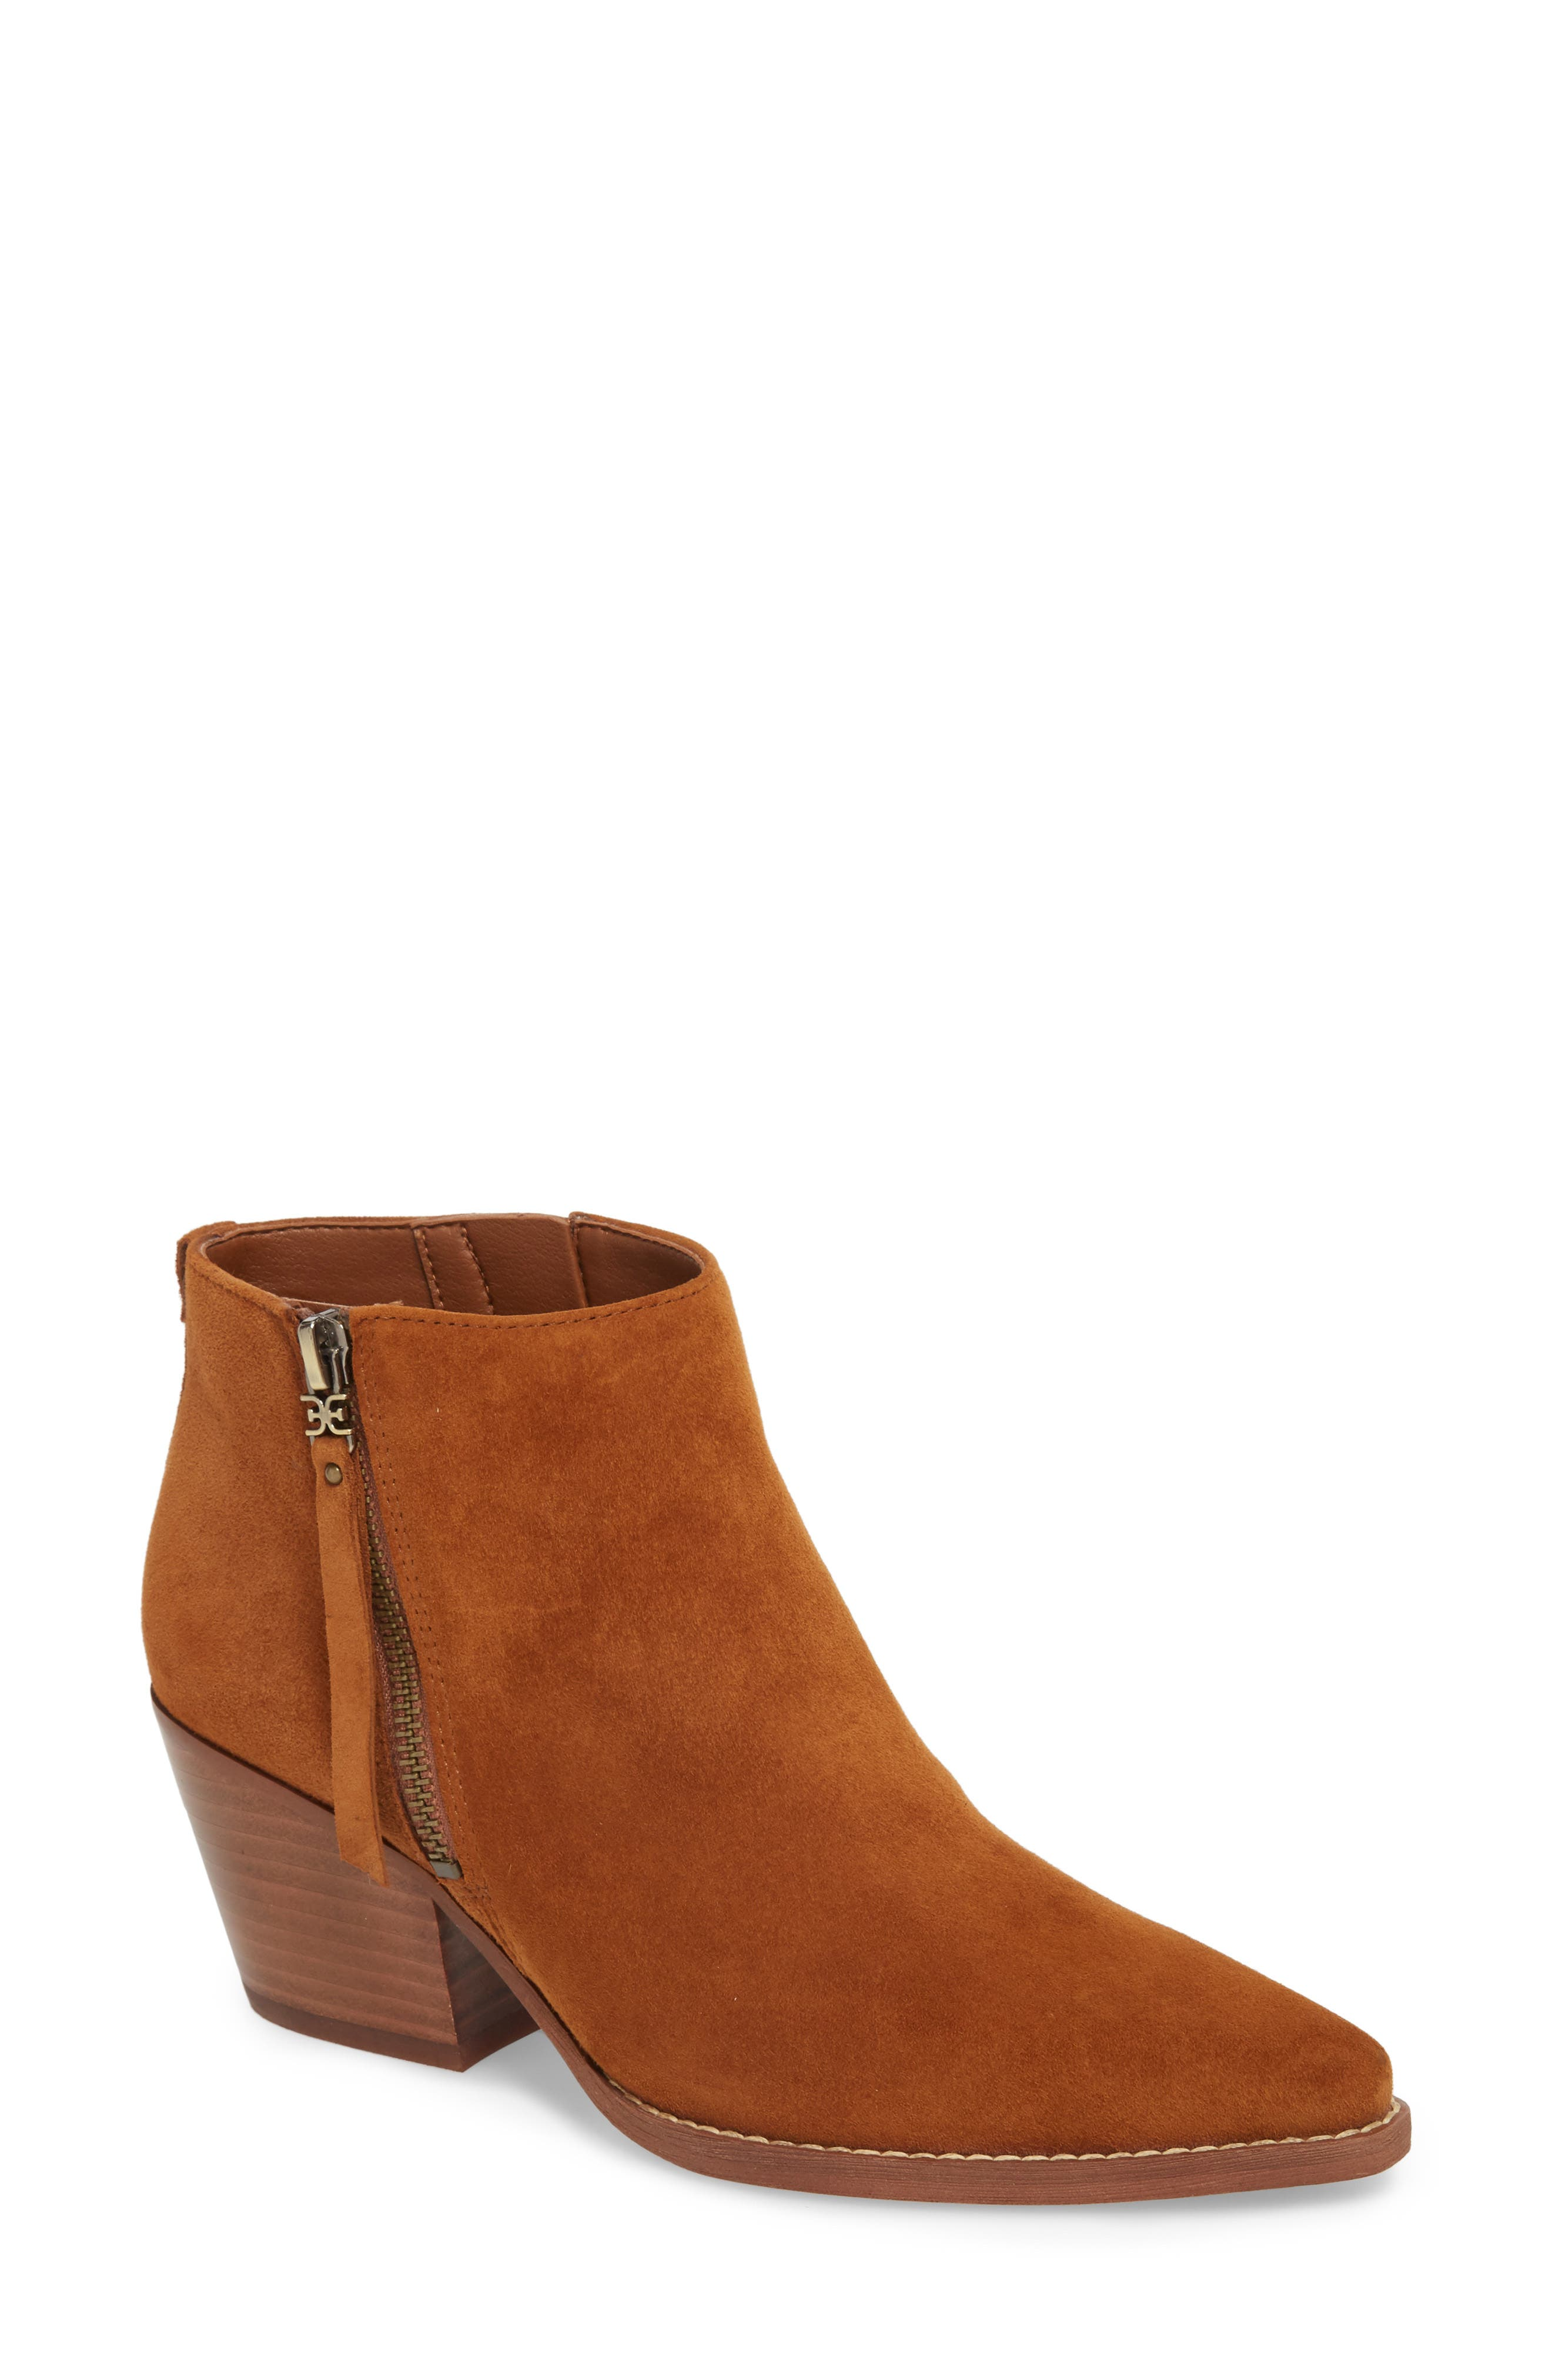 Walden Bootie,                             Main thumbnail 1, color,                             LUGGAGE SUEDE